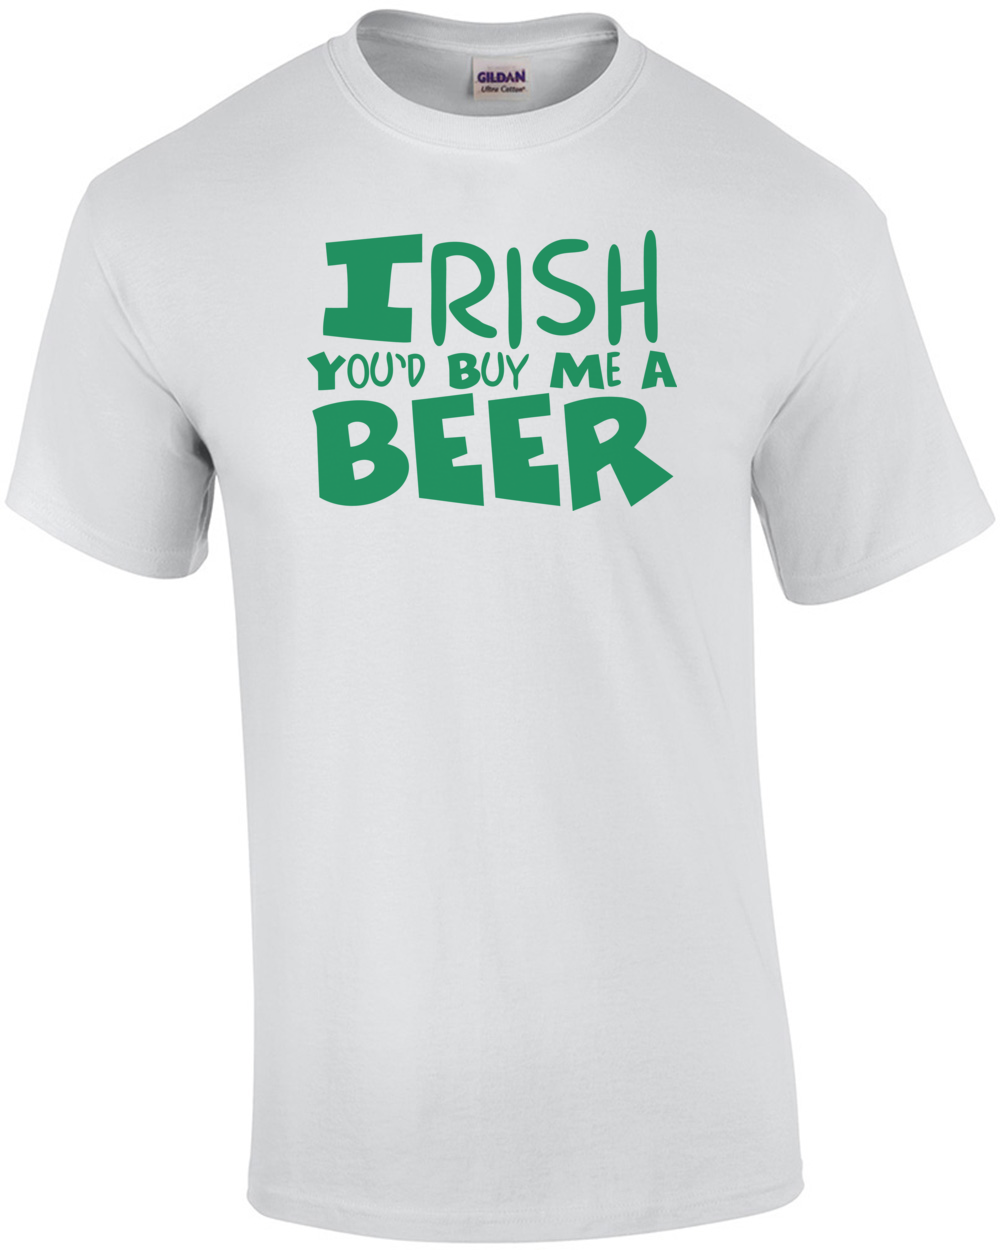 Irish You'd Buy Me a Beer T Shirt